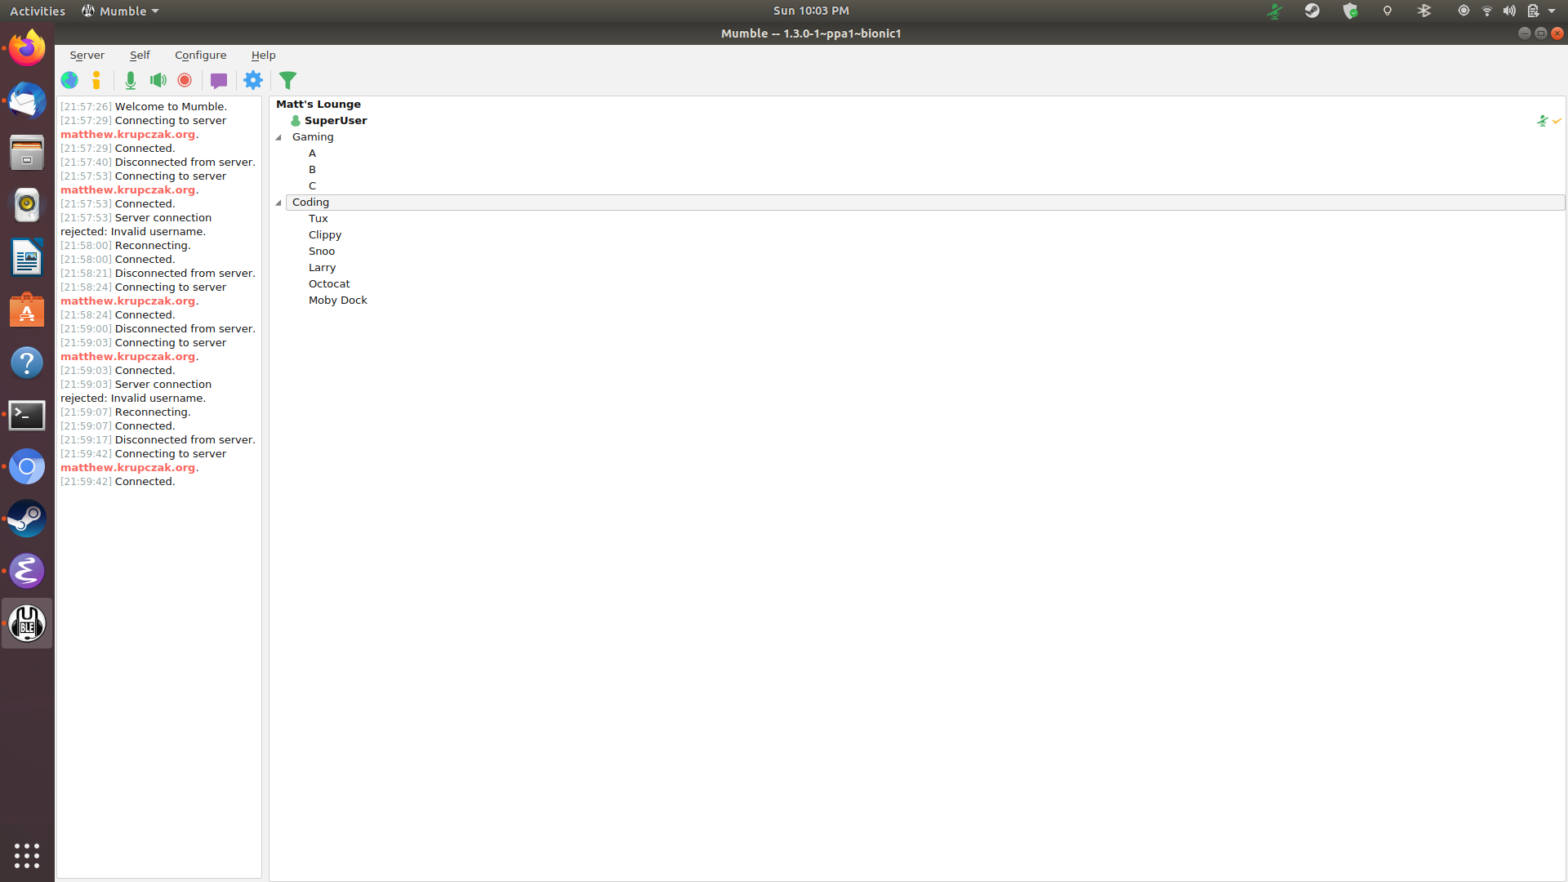 Screenshot of Mumble GUI